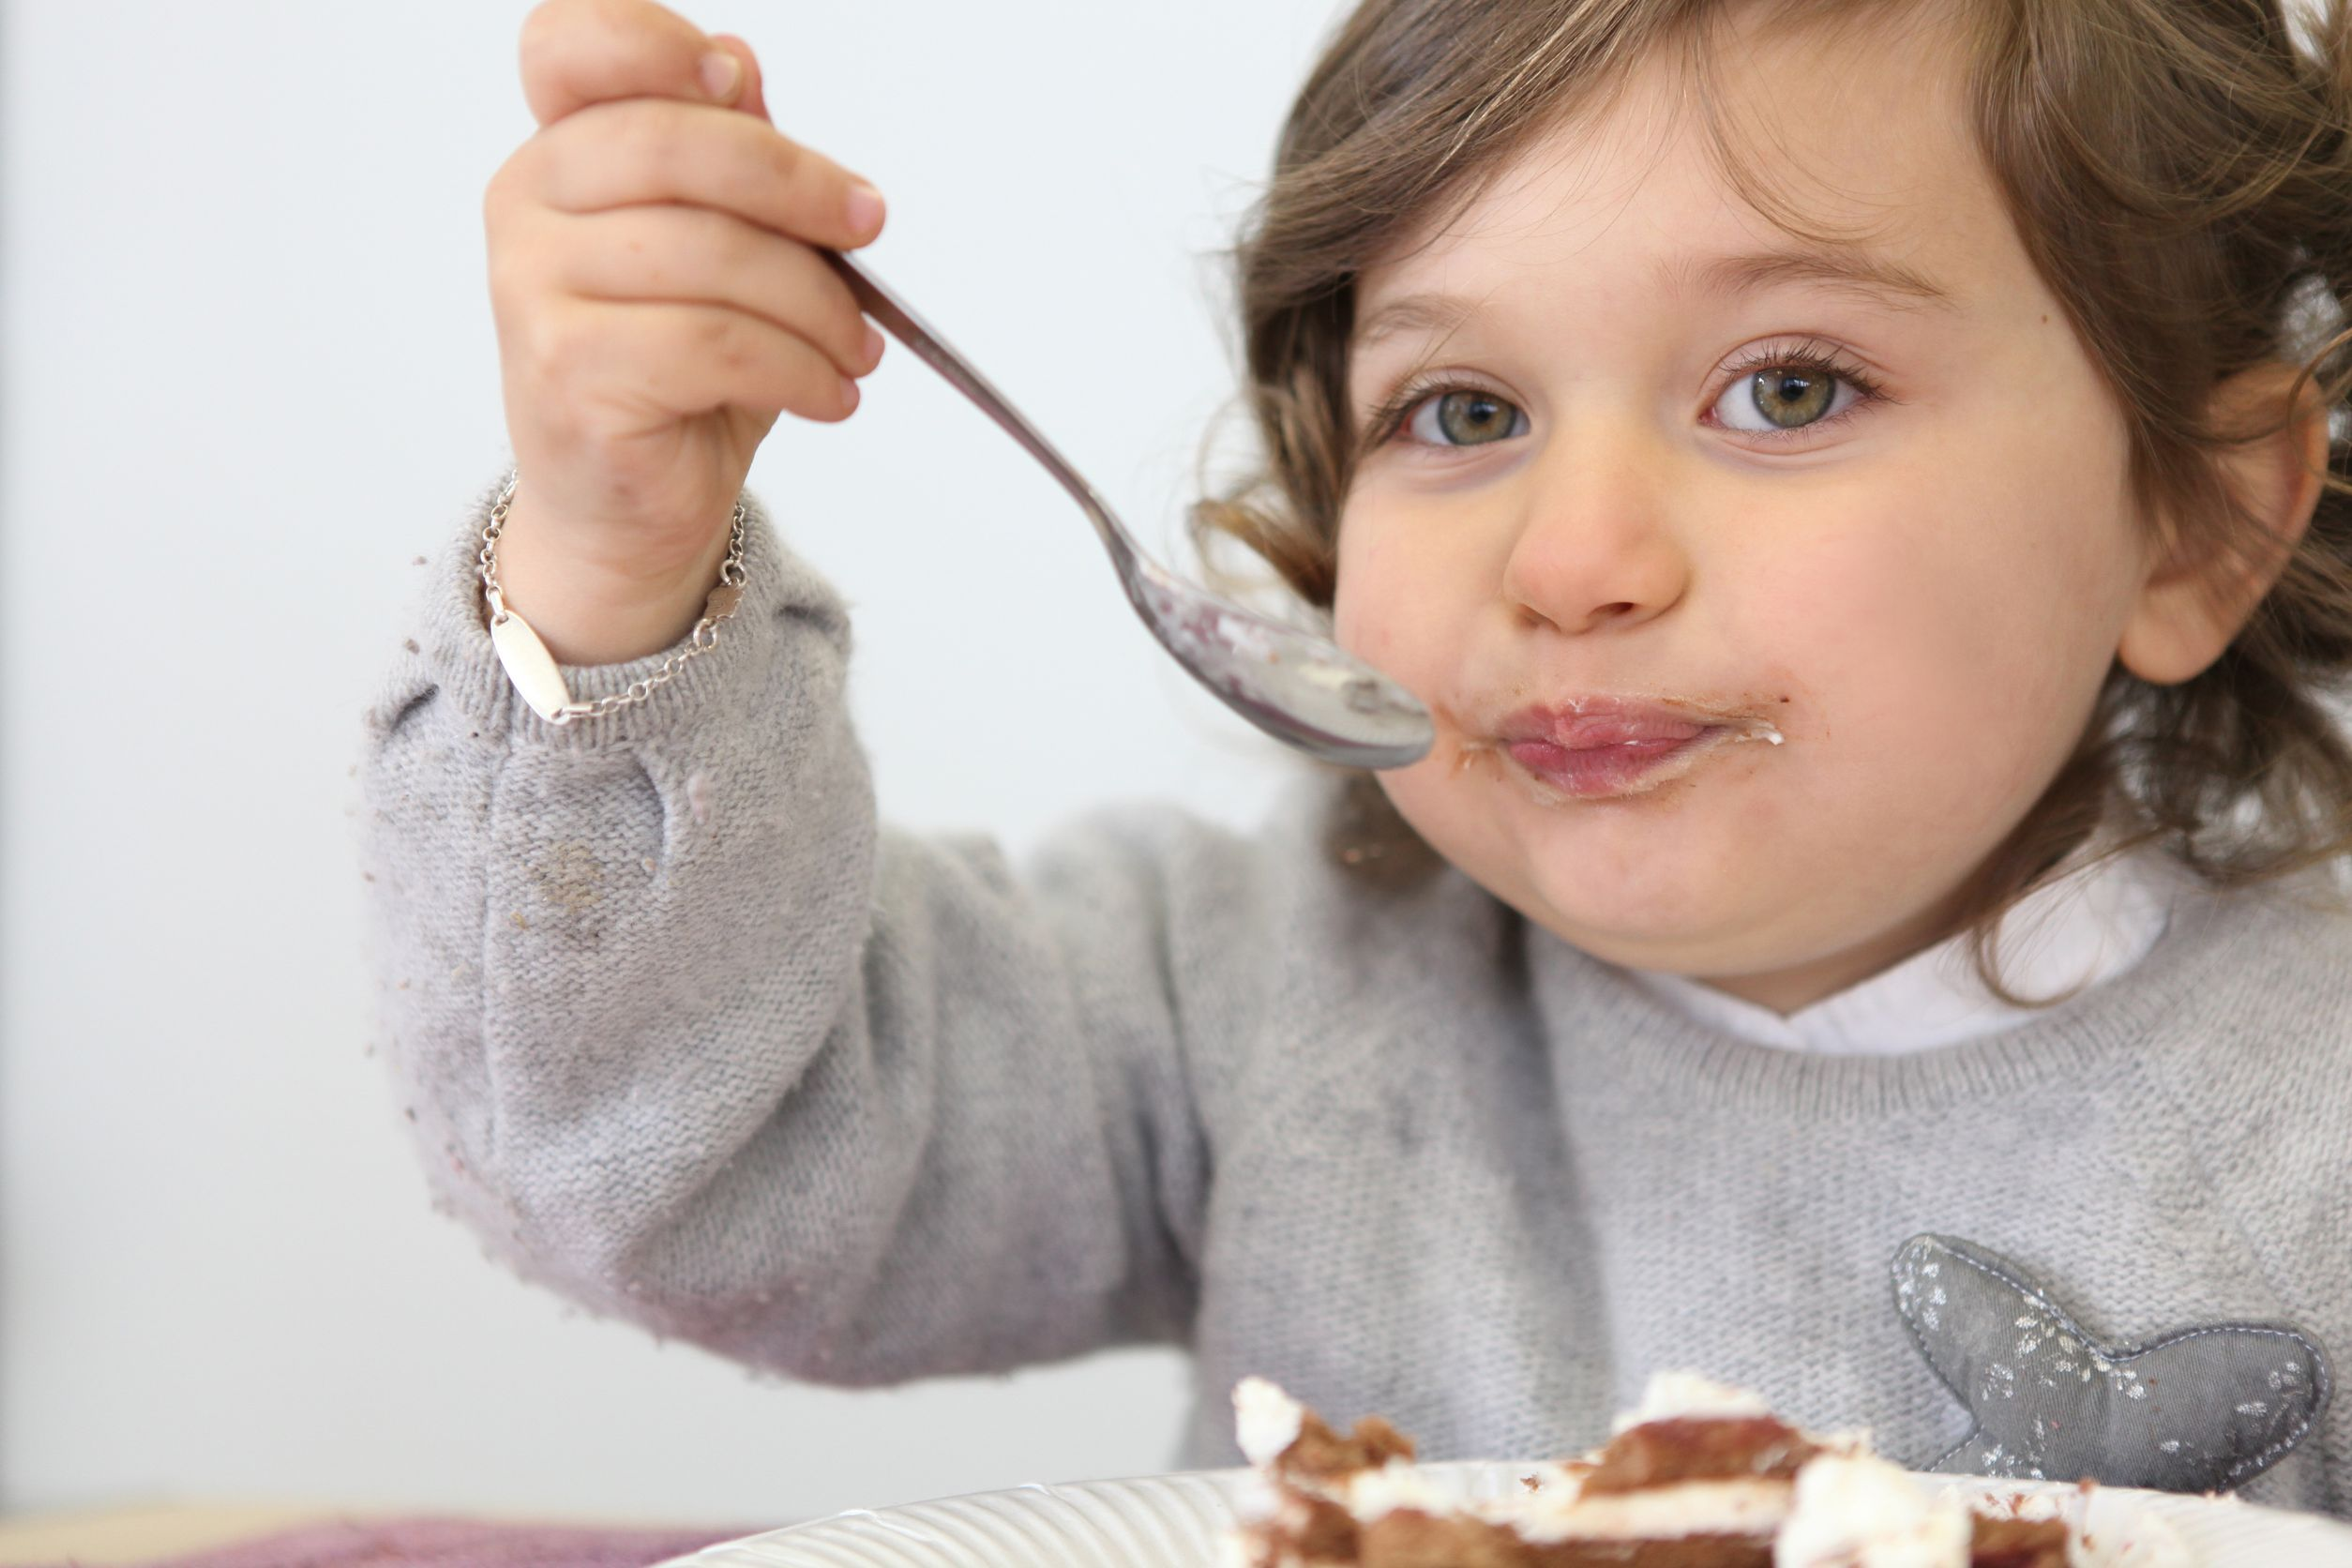 11135641 - young girl eating a piece of cake